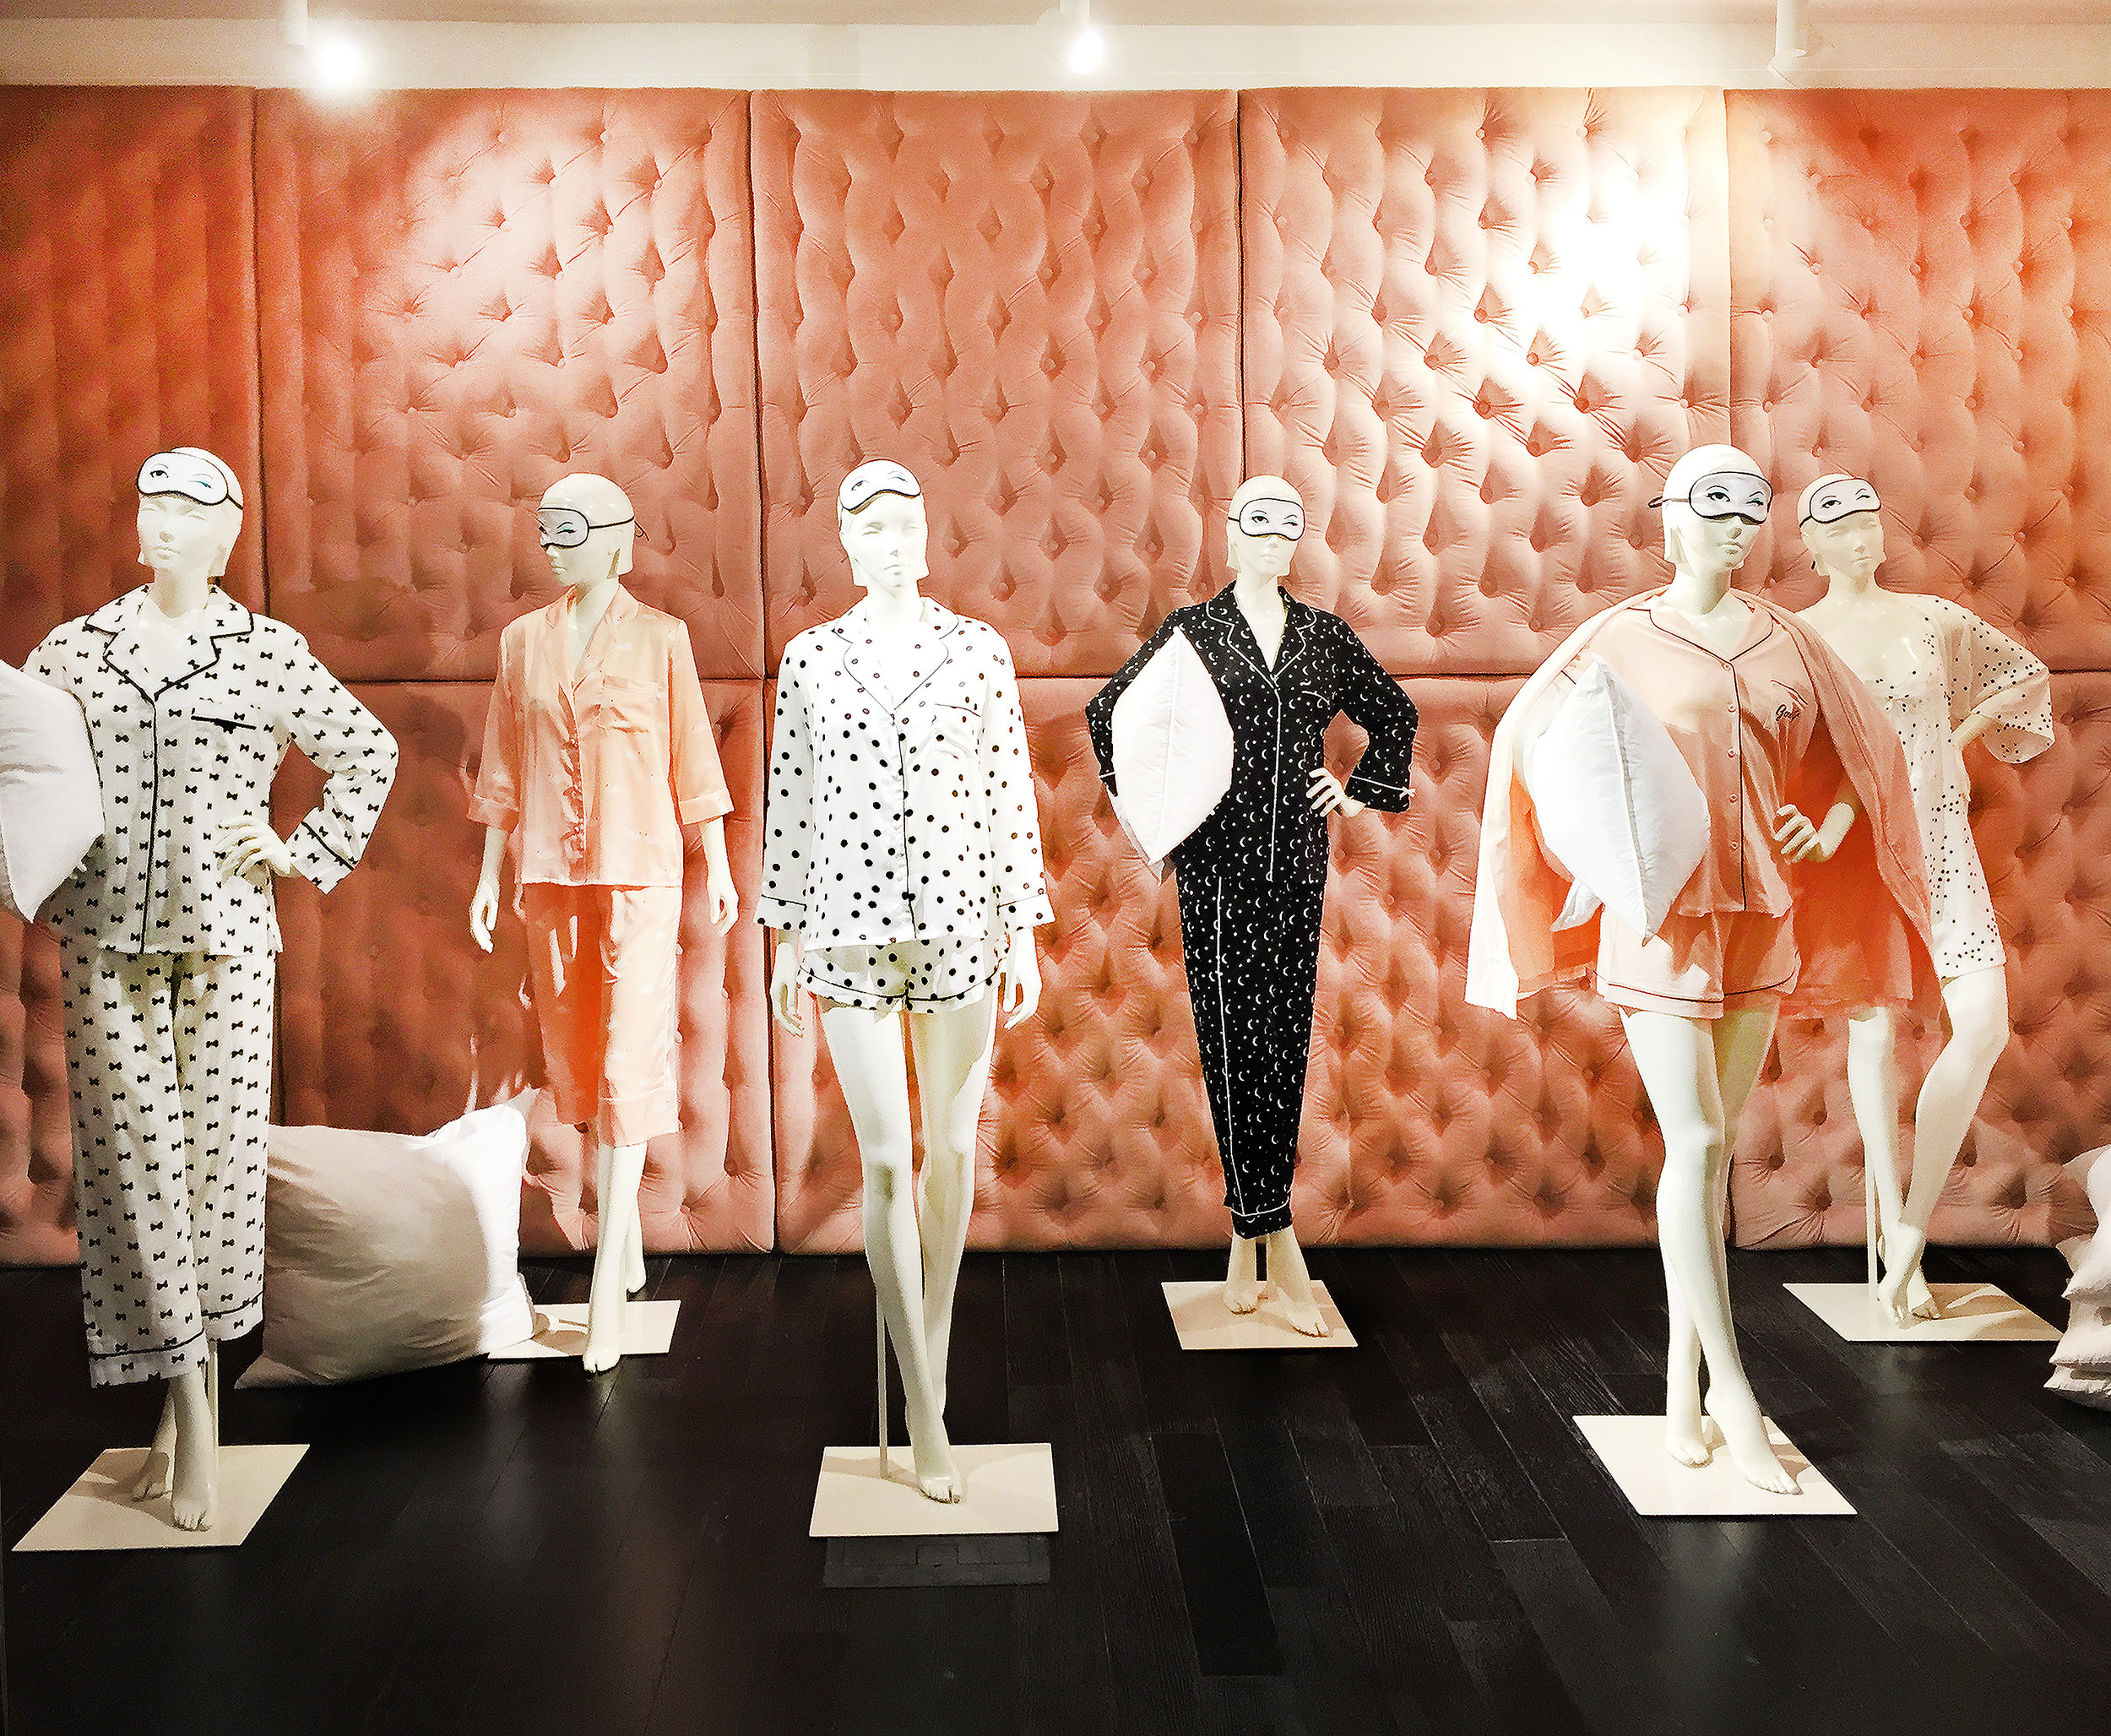 Tufted Wall Panels and Eye Masks for Kate Spade